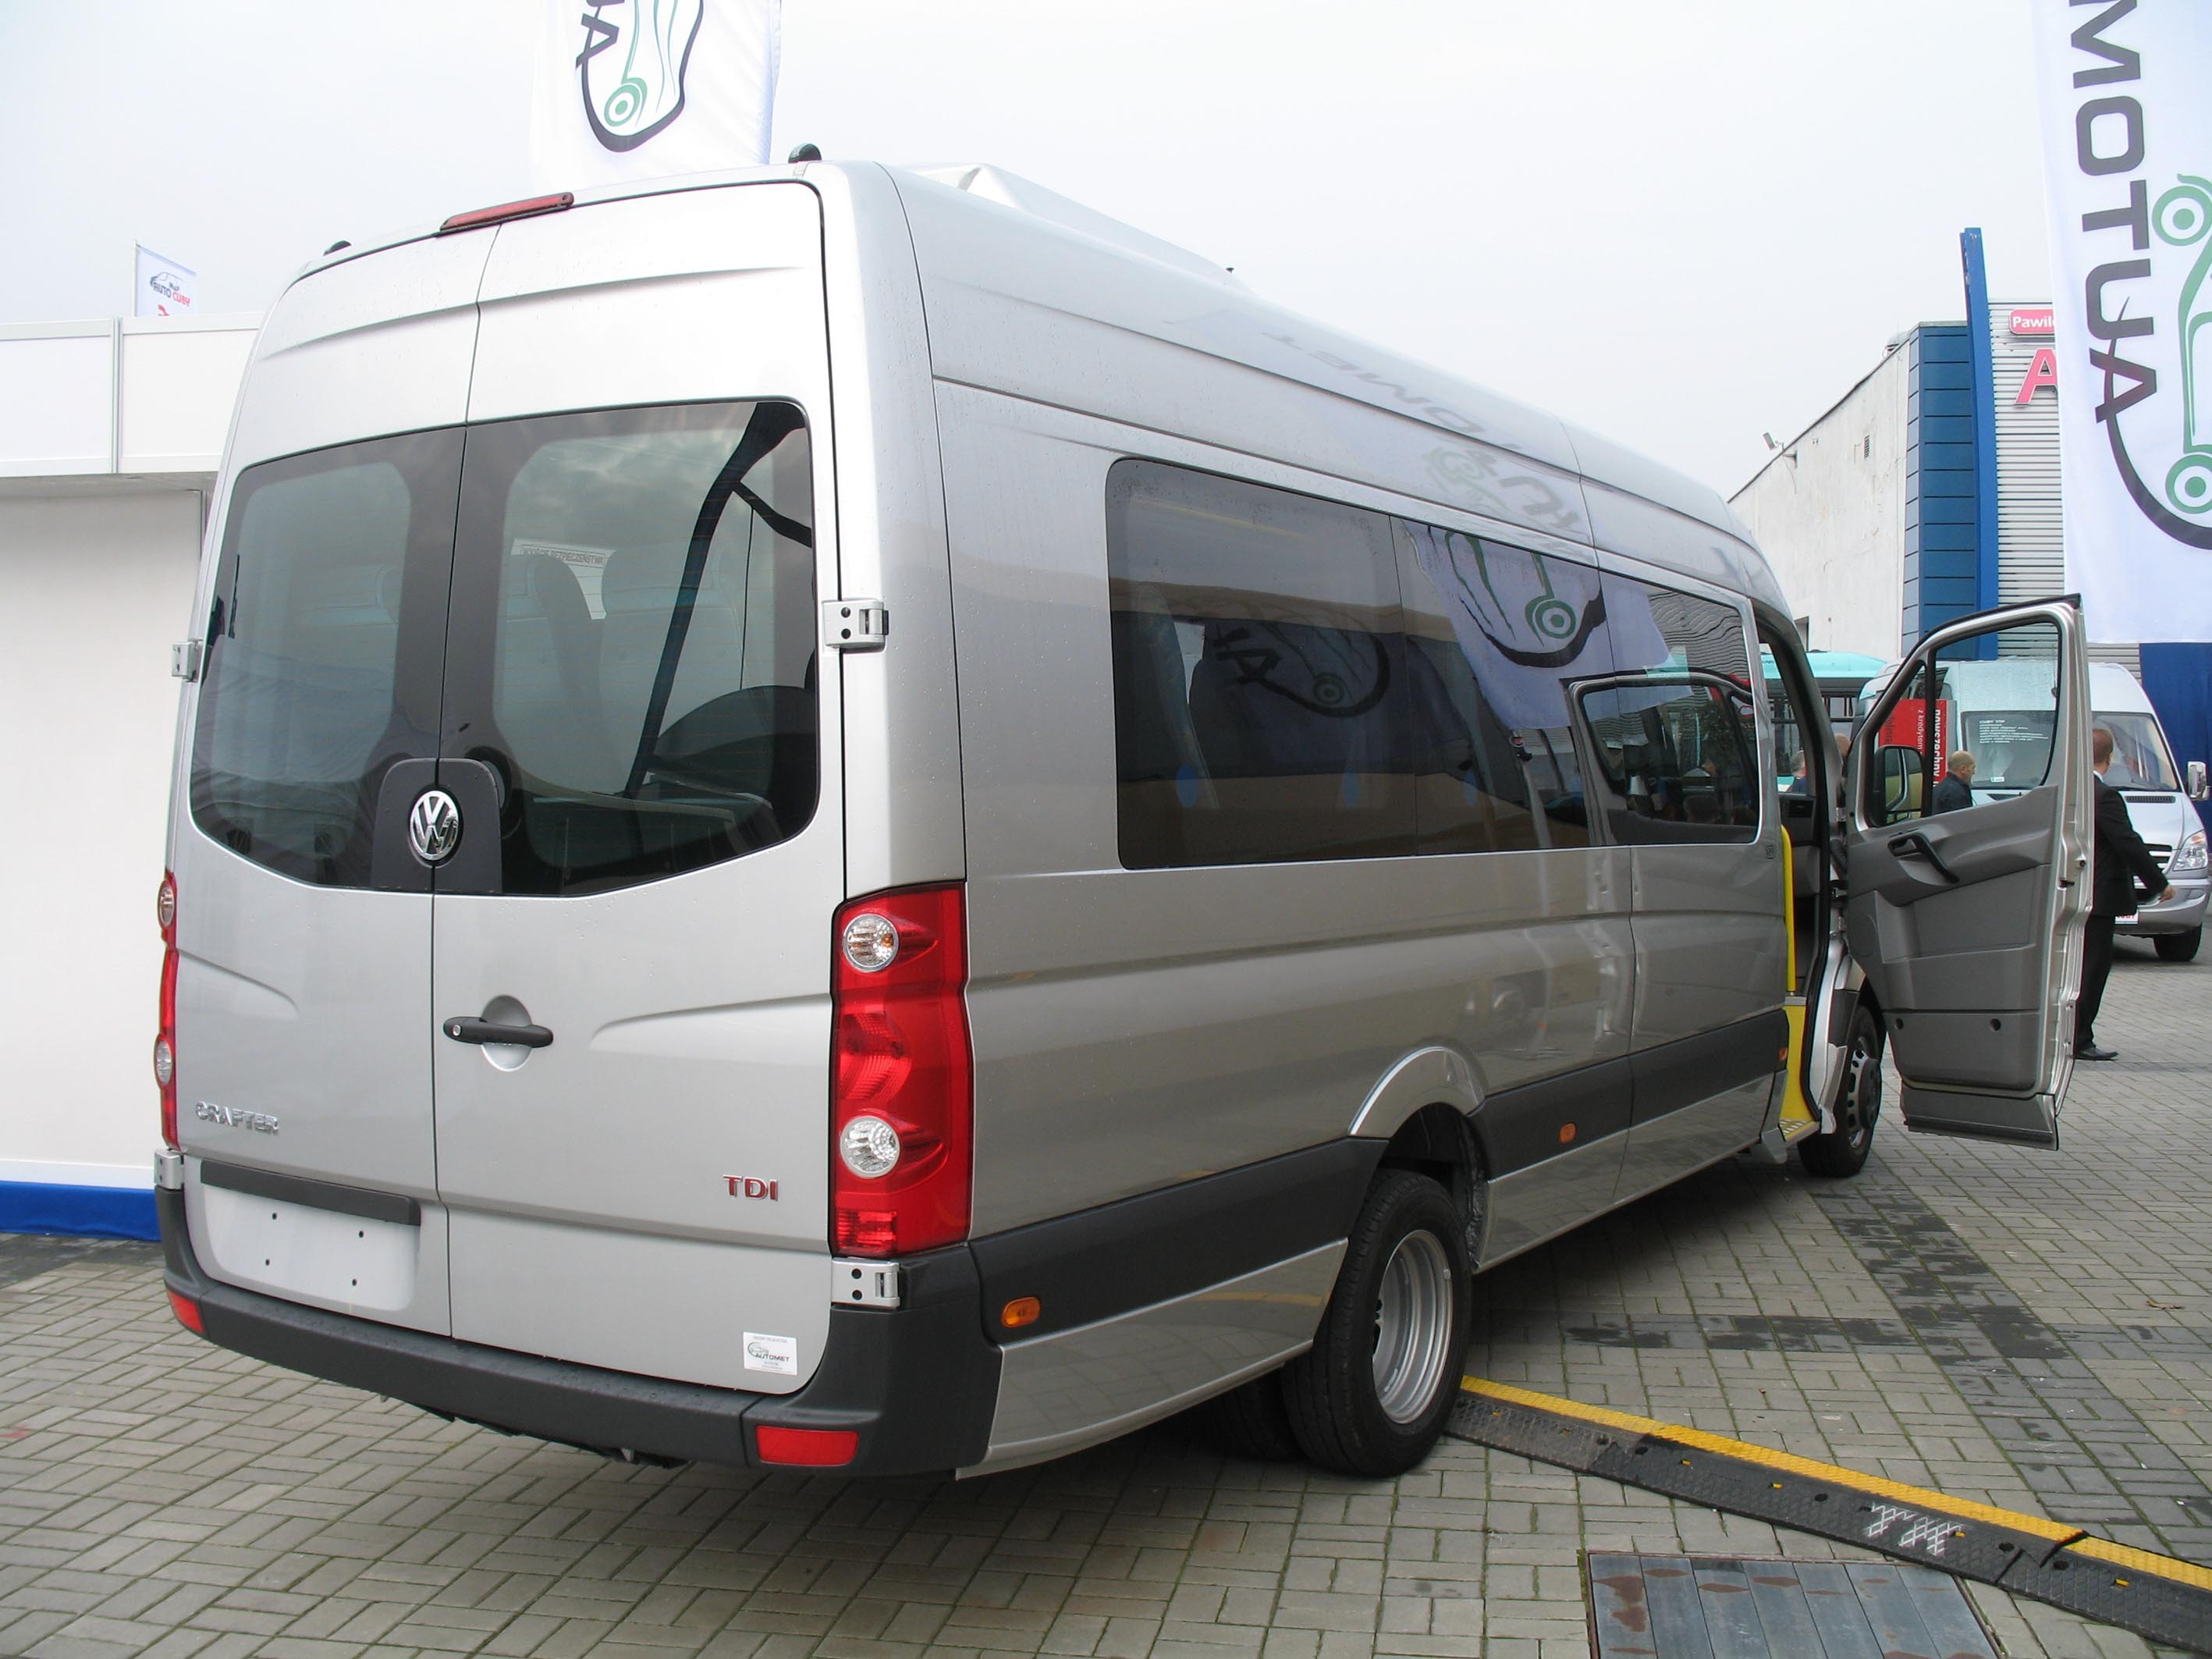 vw crafter technical details, history, photos on better parts ltd